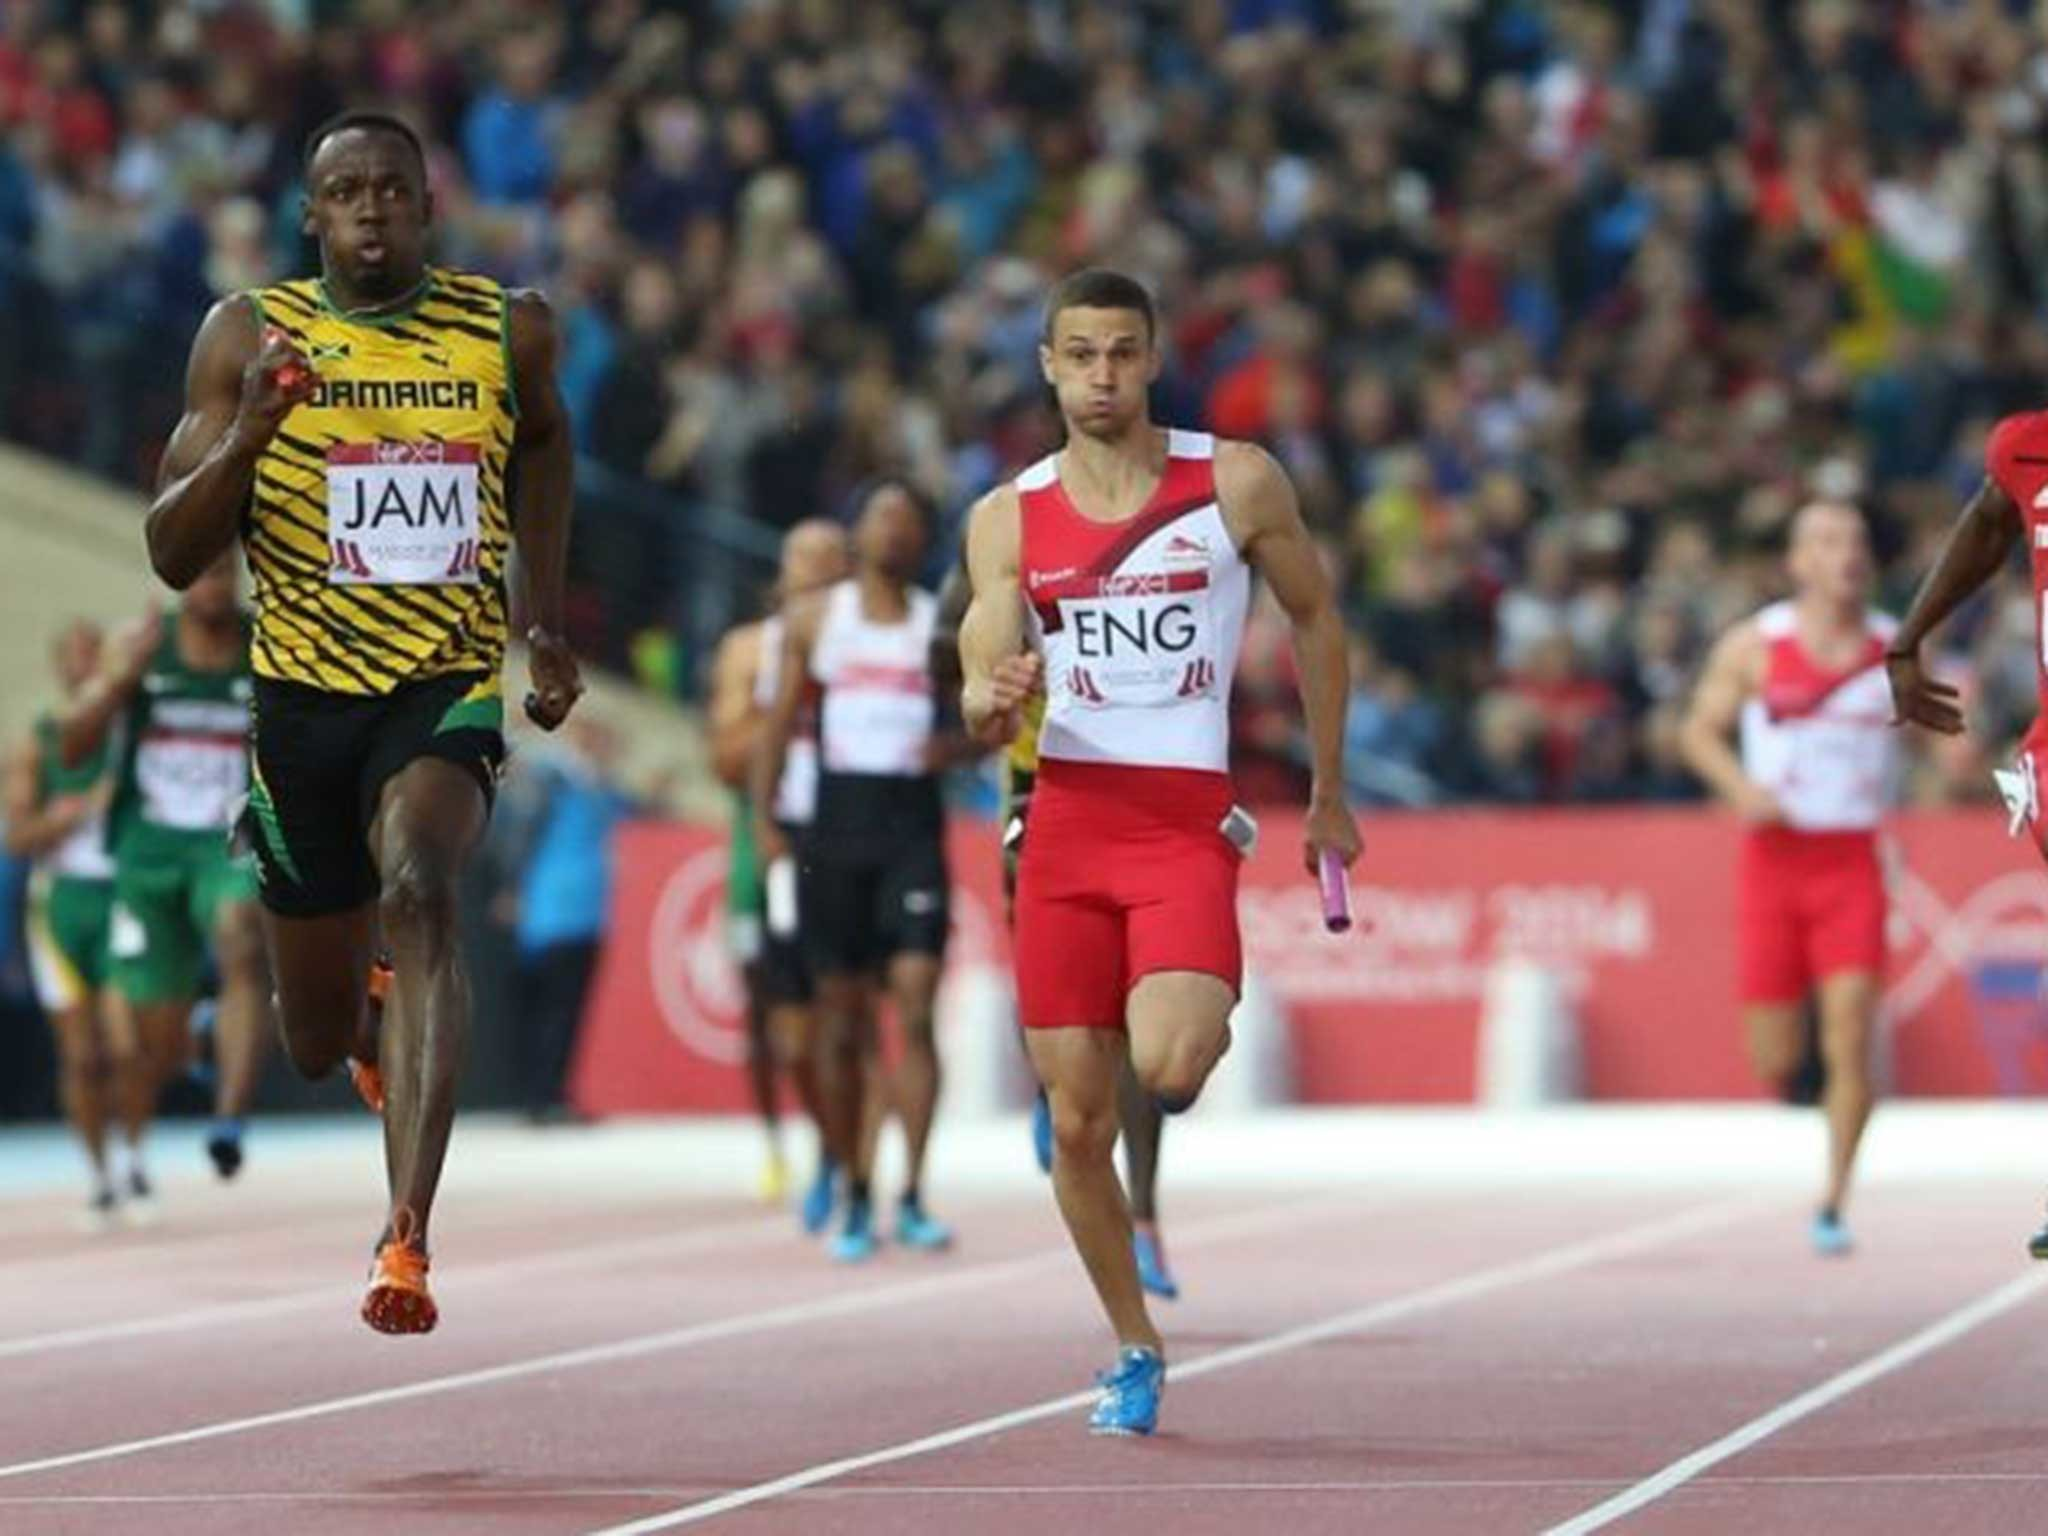 2048x1536 Commonwealth Games 2014: Show stopper Usain Bolt takes giant strides to win  4x100m relay final | The Independent